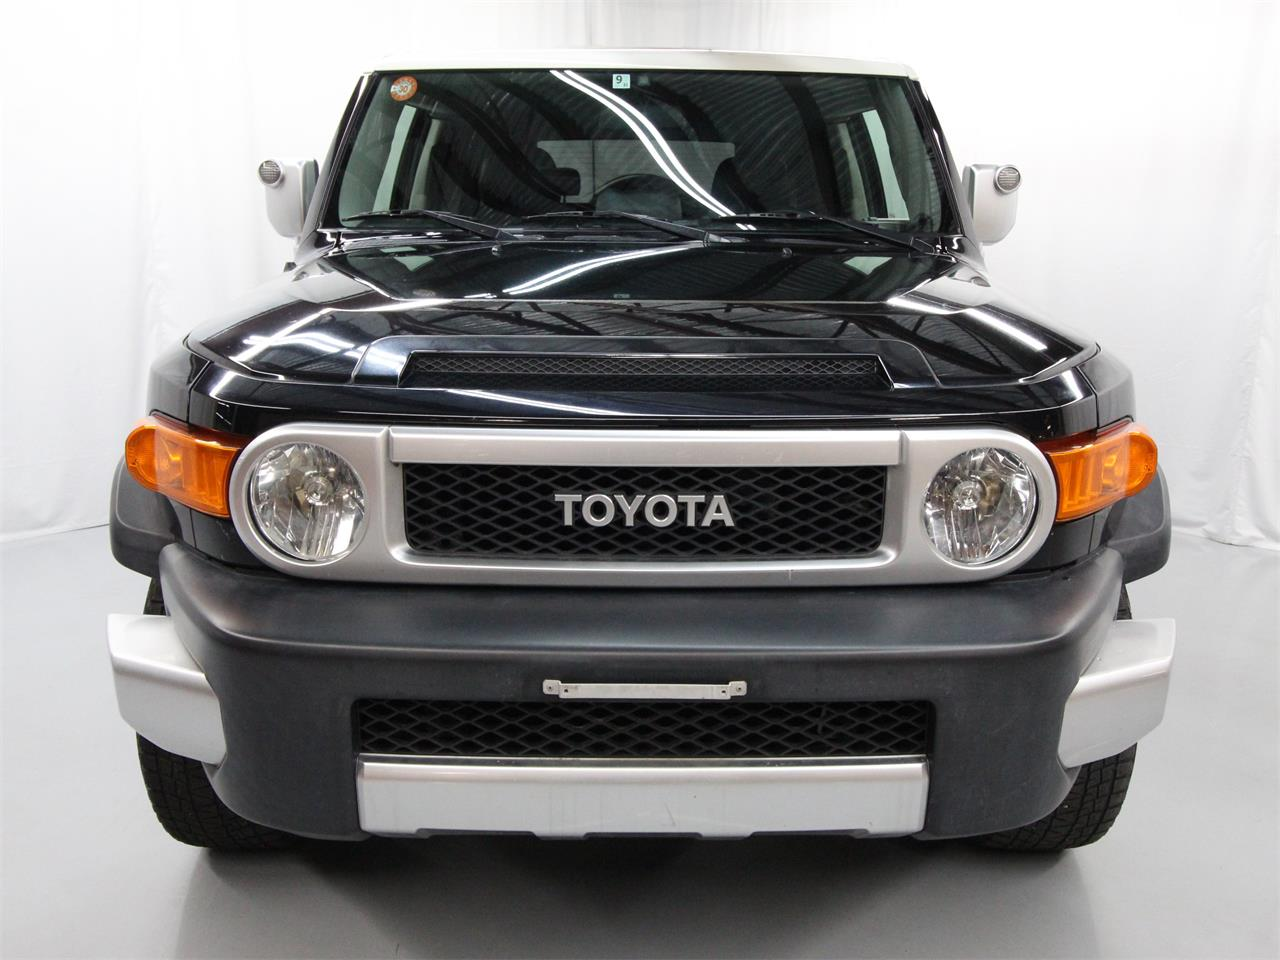 Large Picture of 2007 Toyota FJ Cruiser - $21,780.00 - Q53G